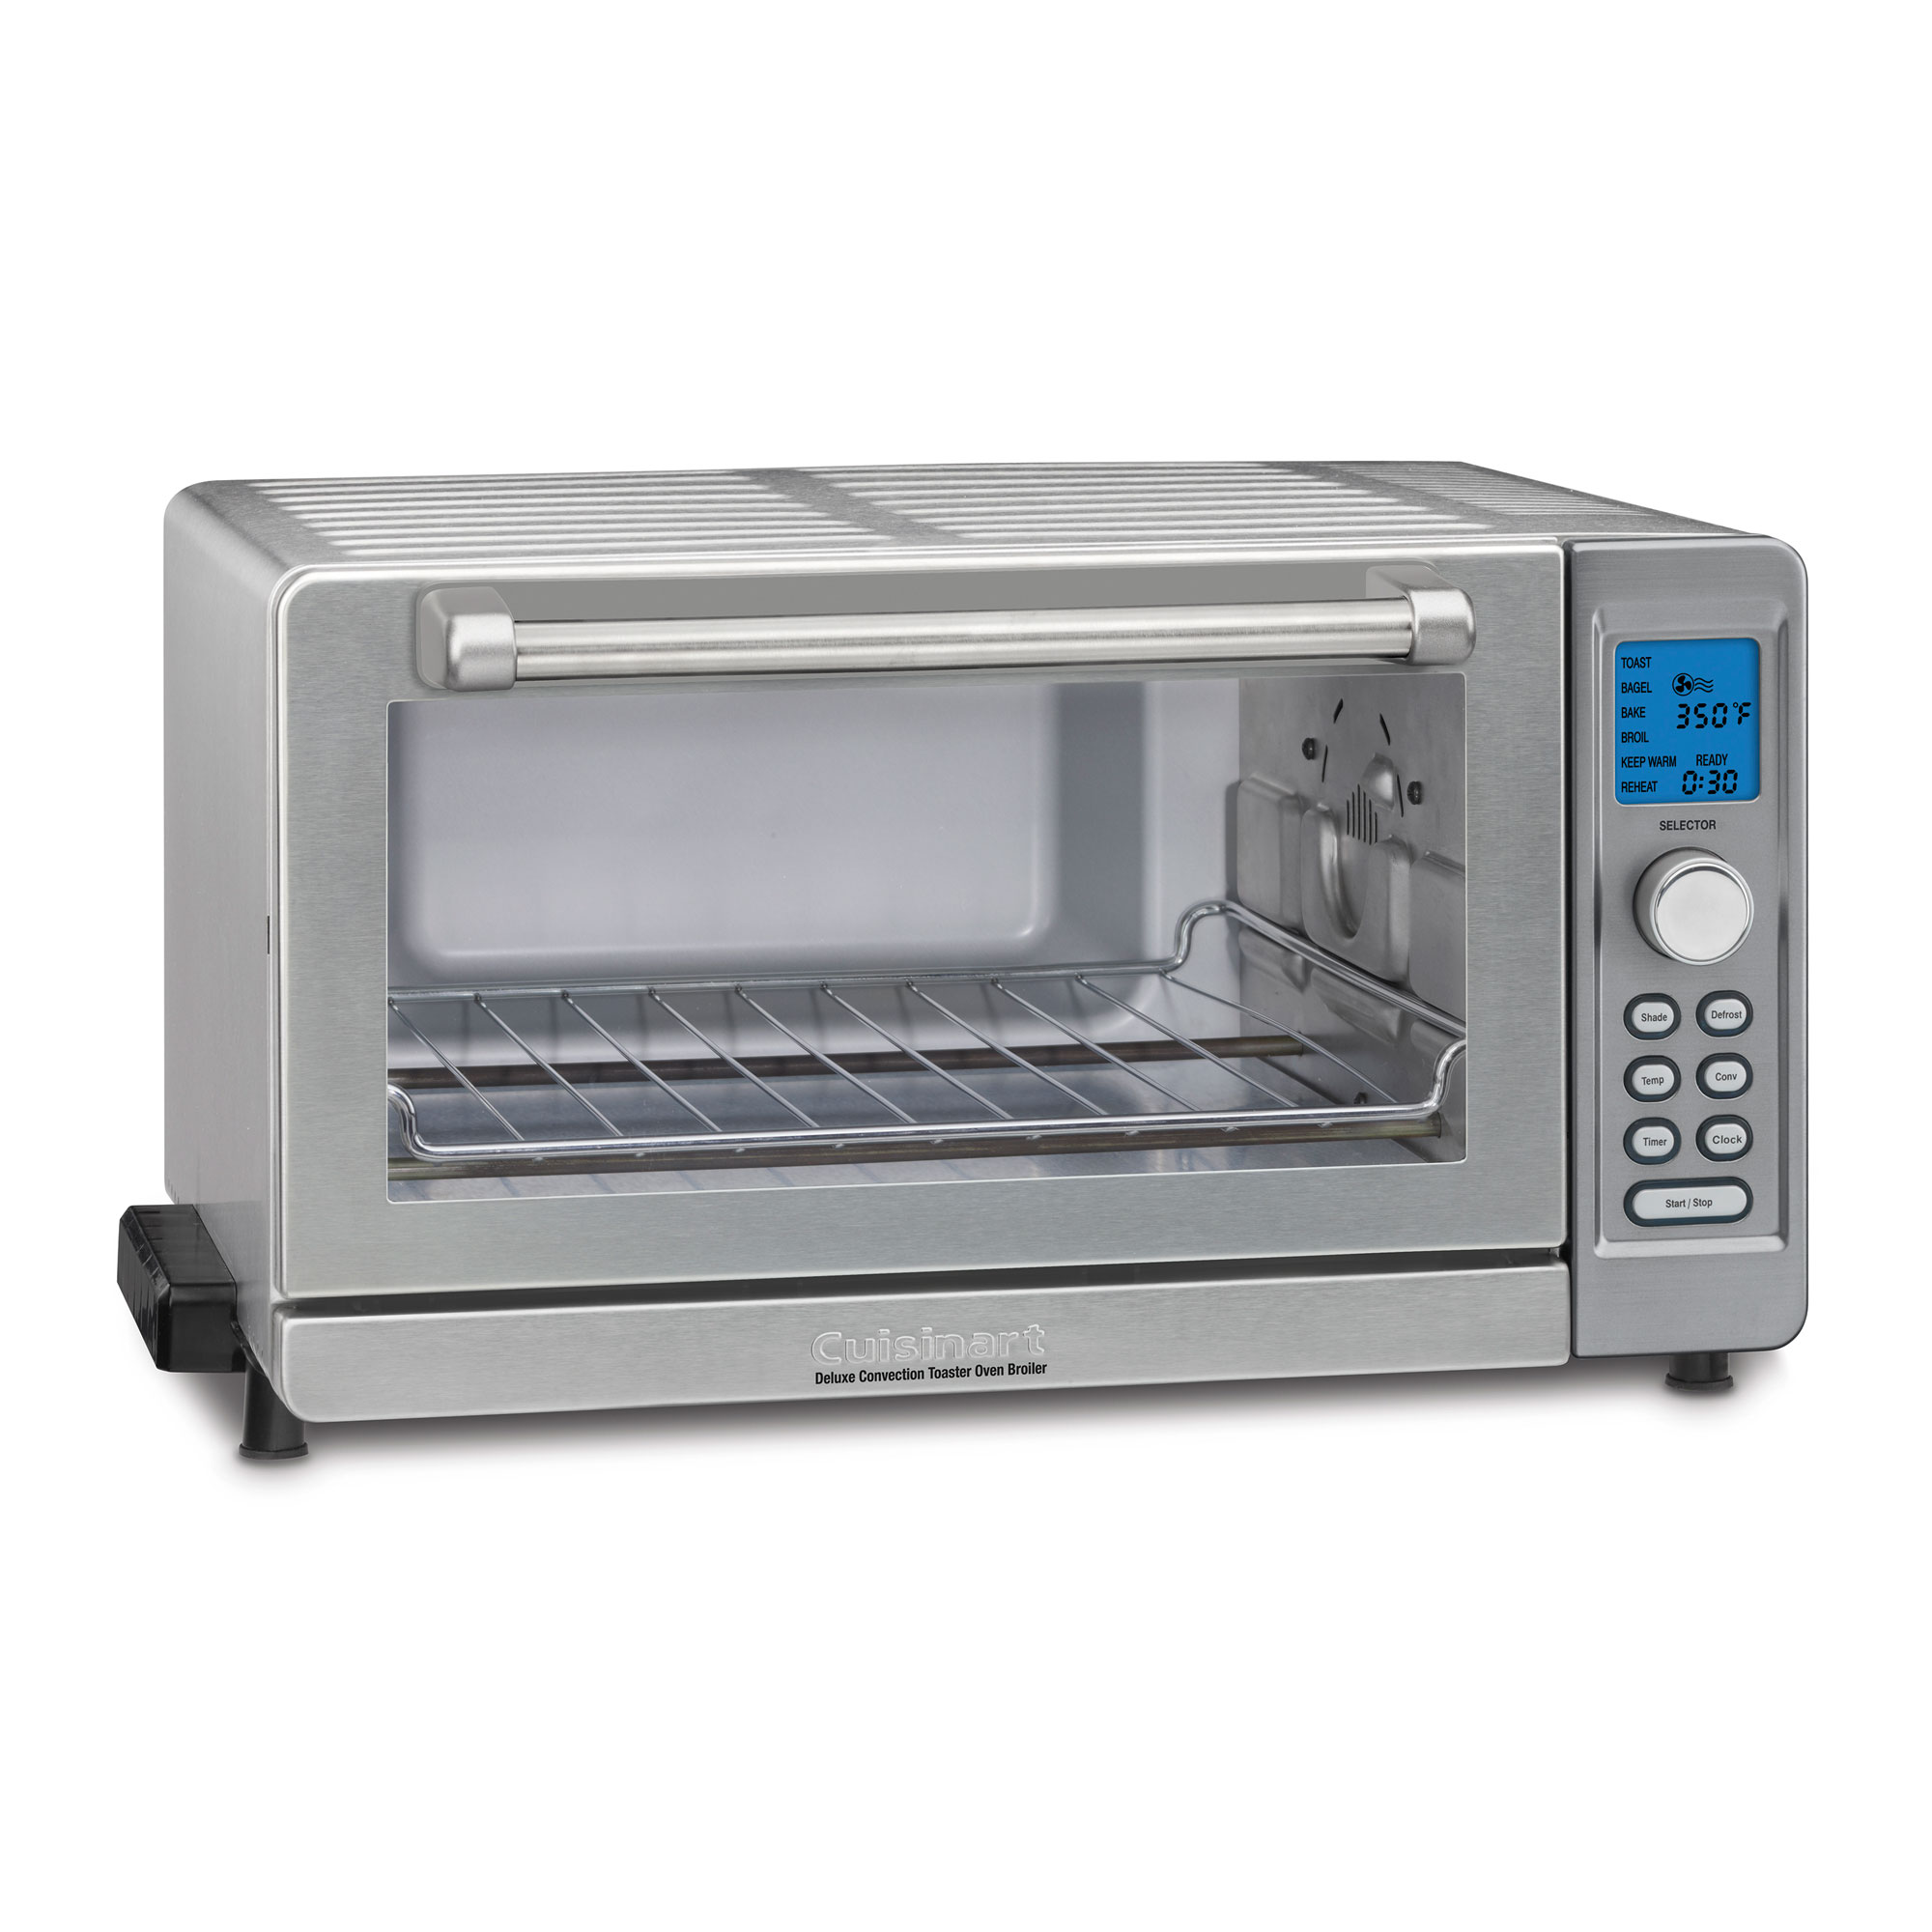 oven convection deluxe broiler kitchen dining tob dp stainless amazon steel cuisinart com toaster